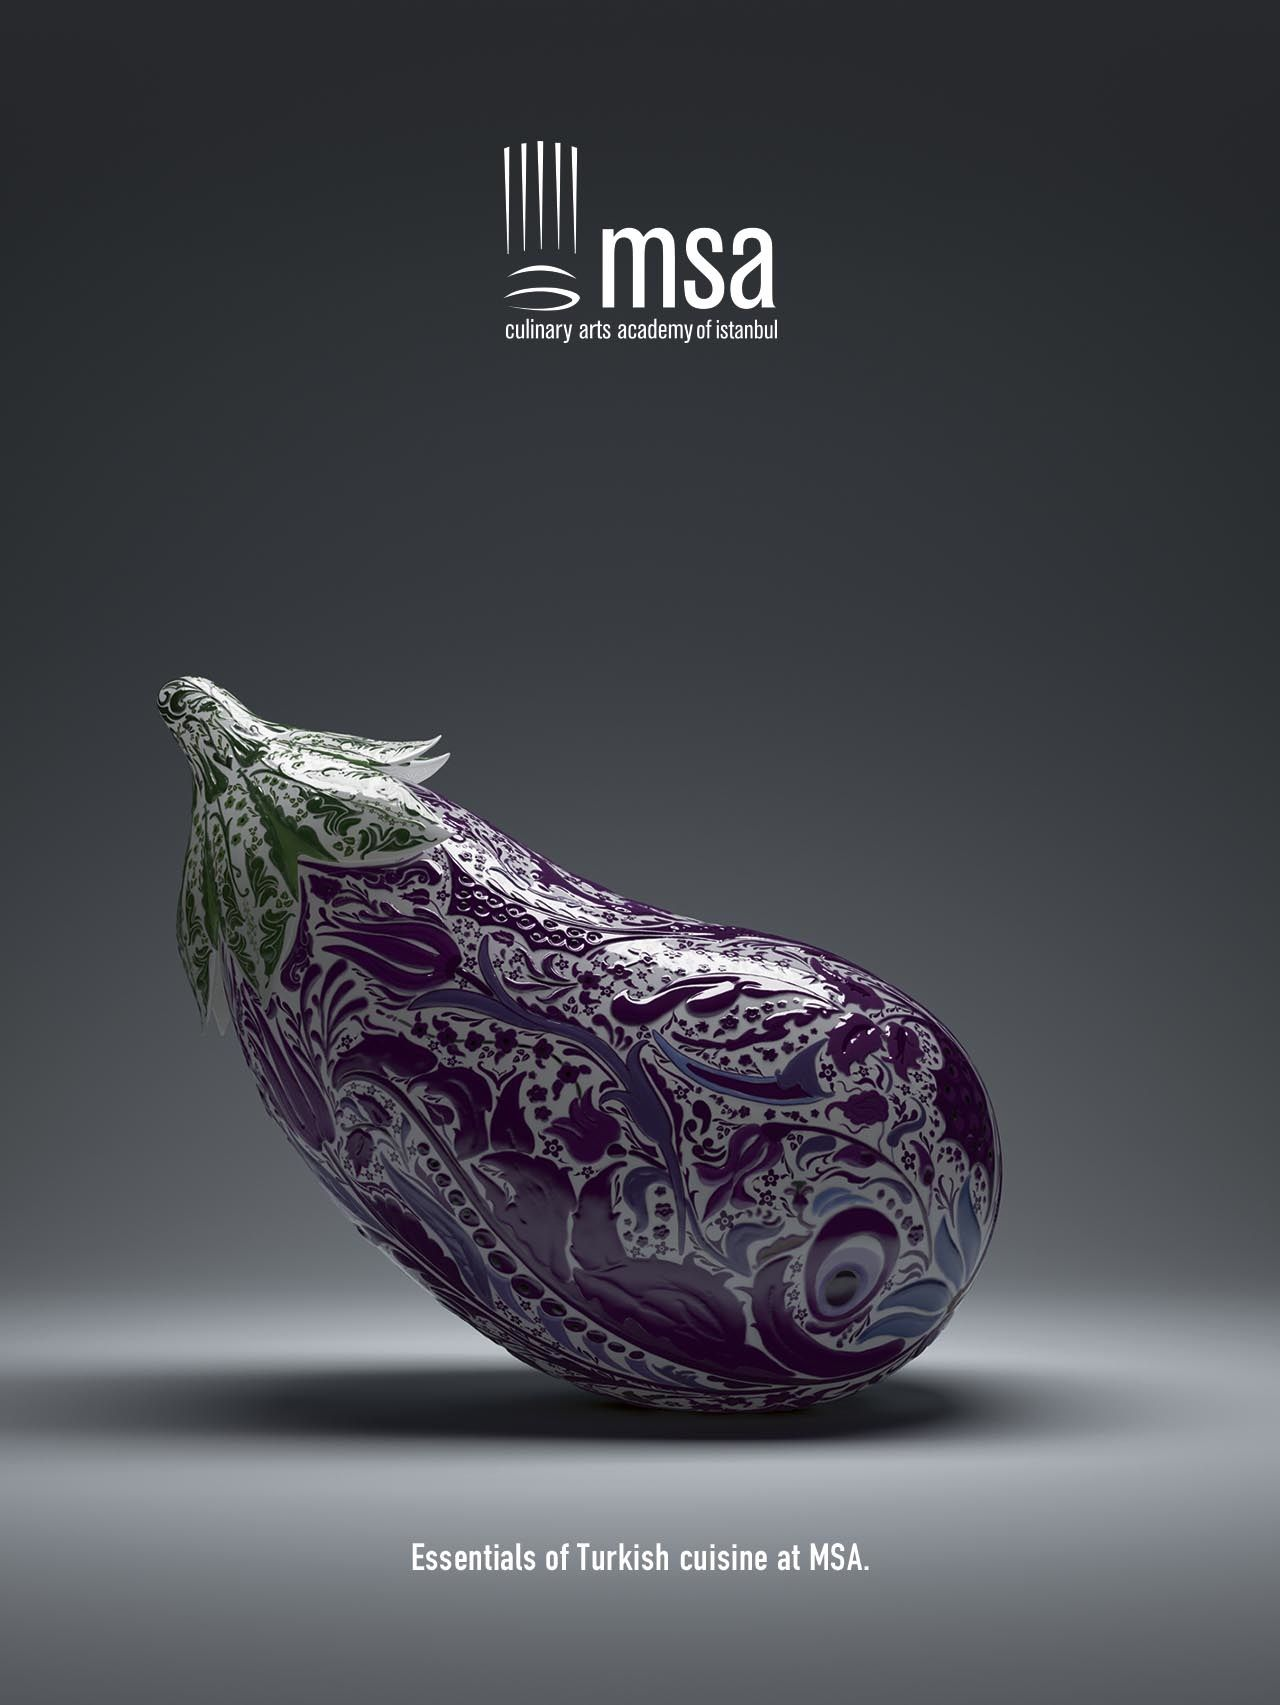 essentials of turkish cuisine | creative ad awards | creative